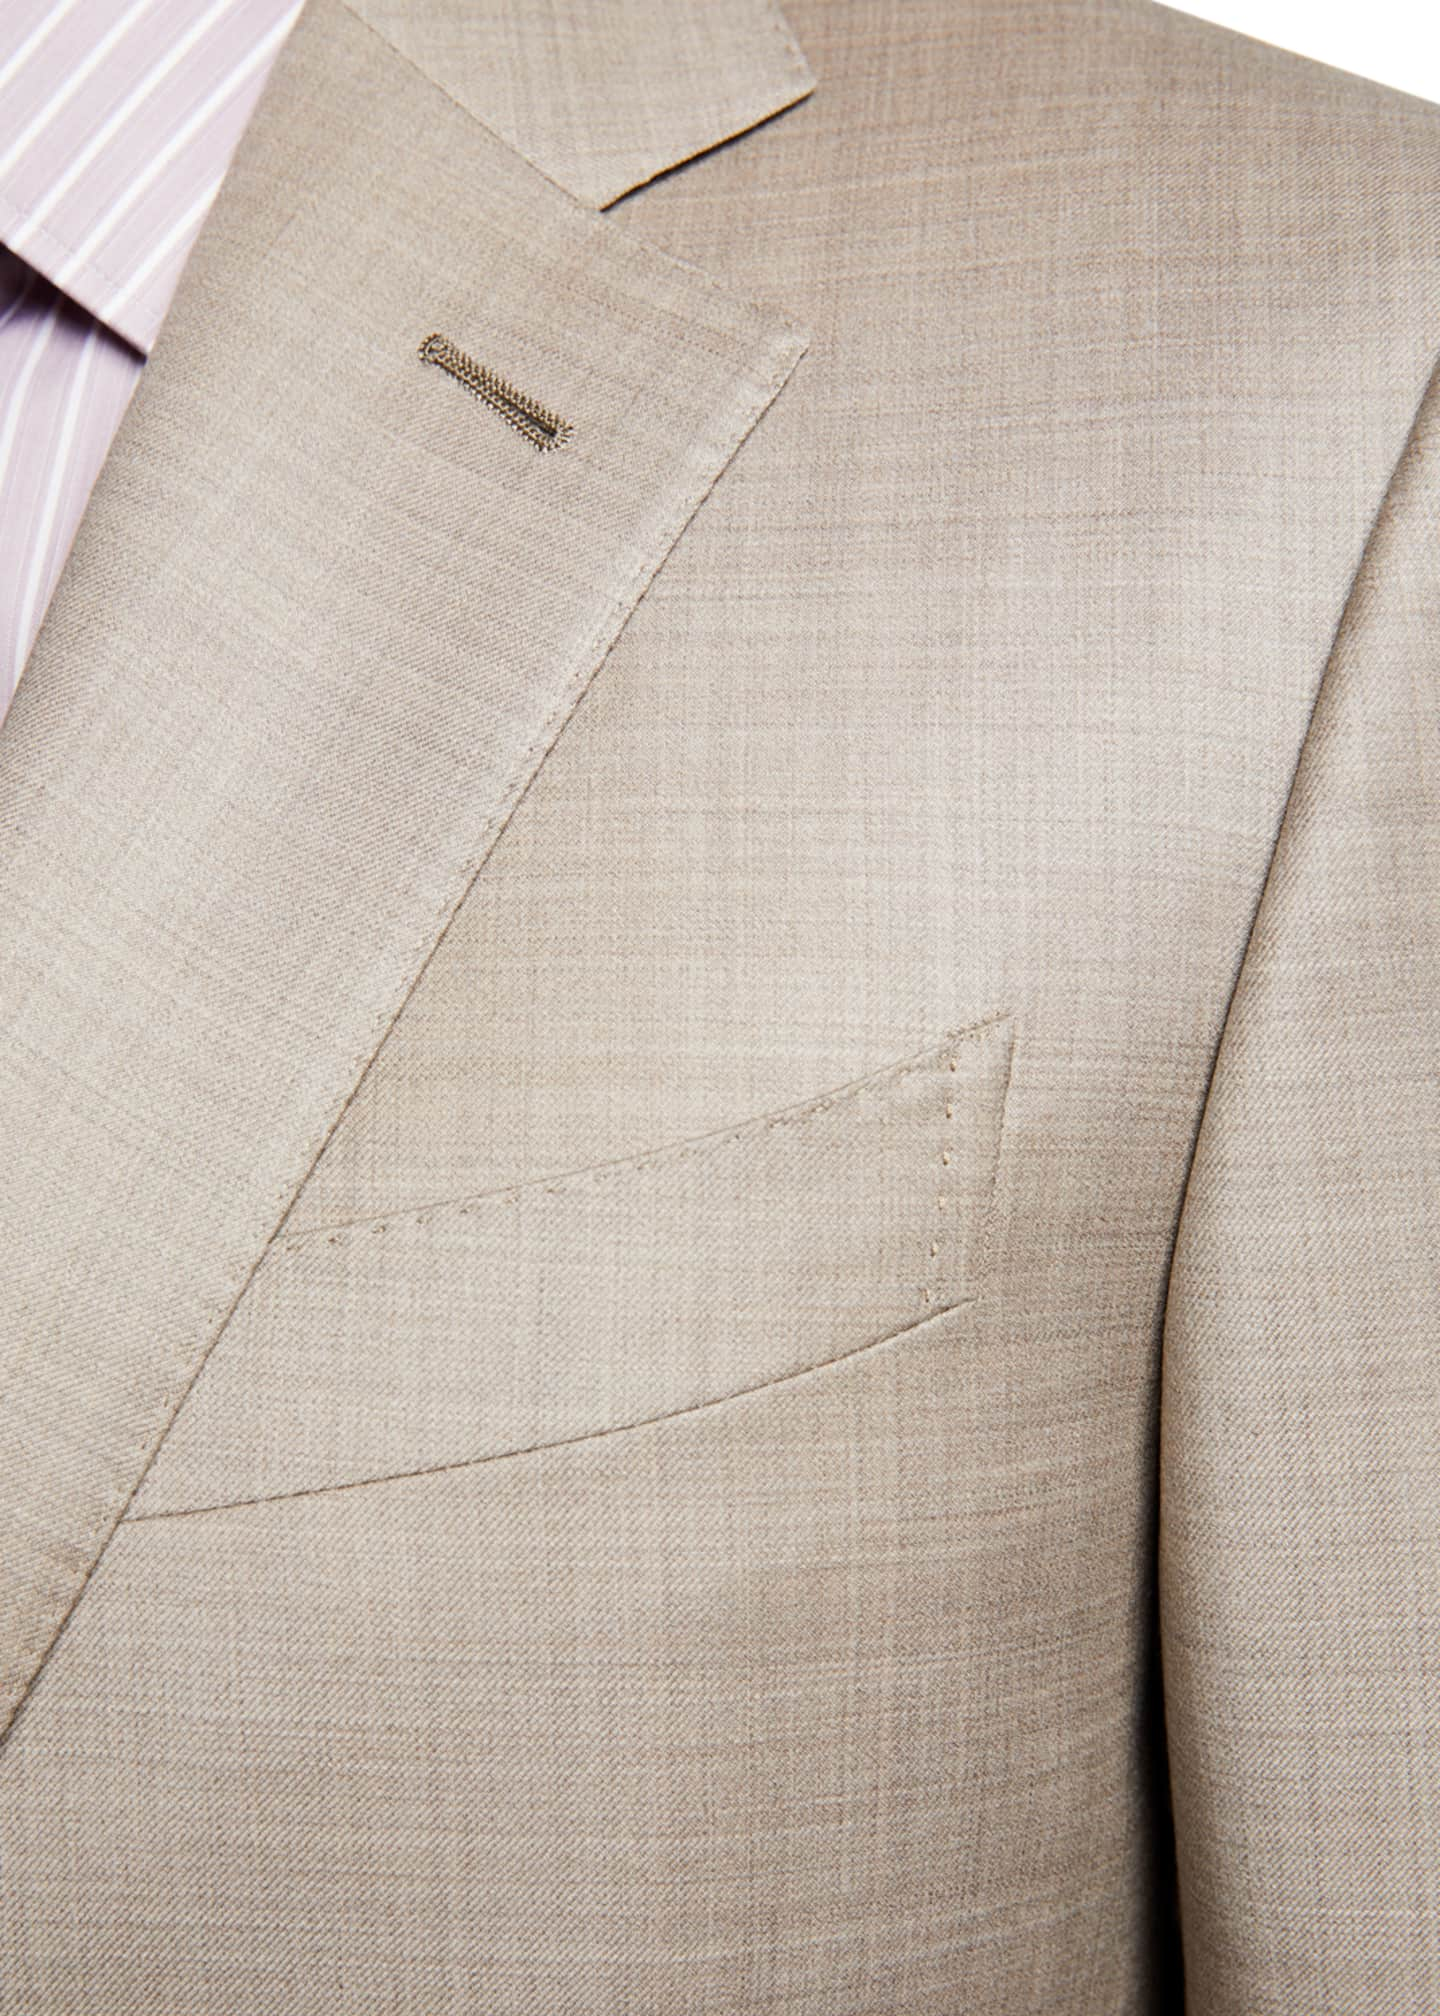 Image 4 of 4: Men's Regular-Fit Heathered Two-Piece Suit, Beige